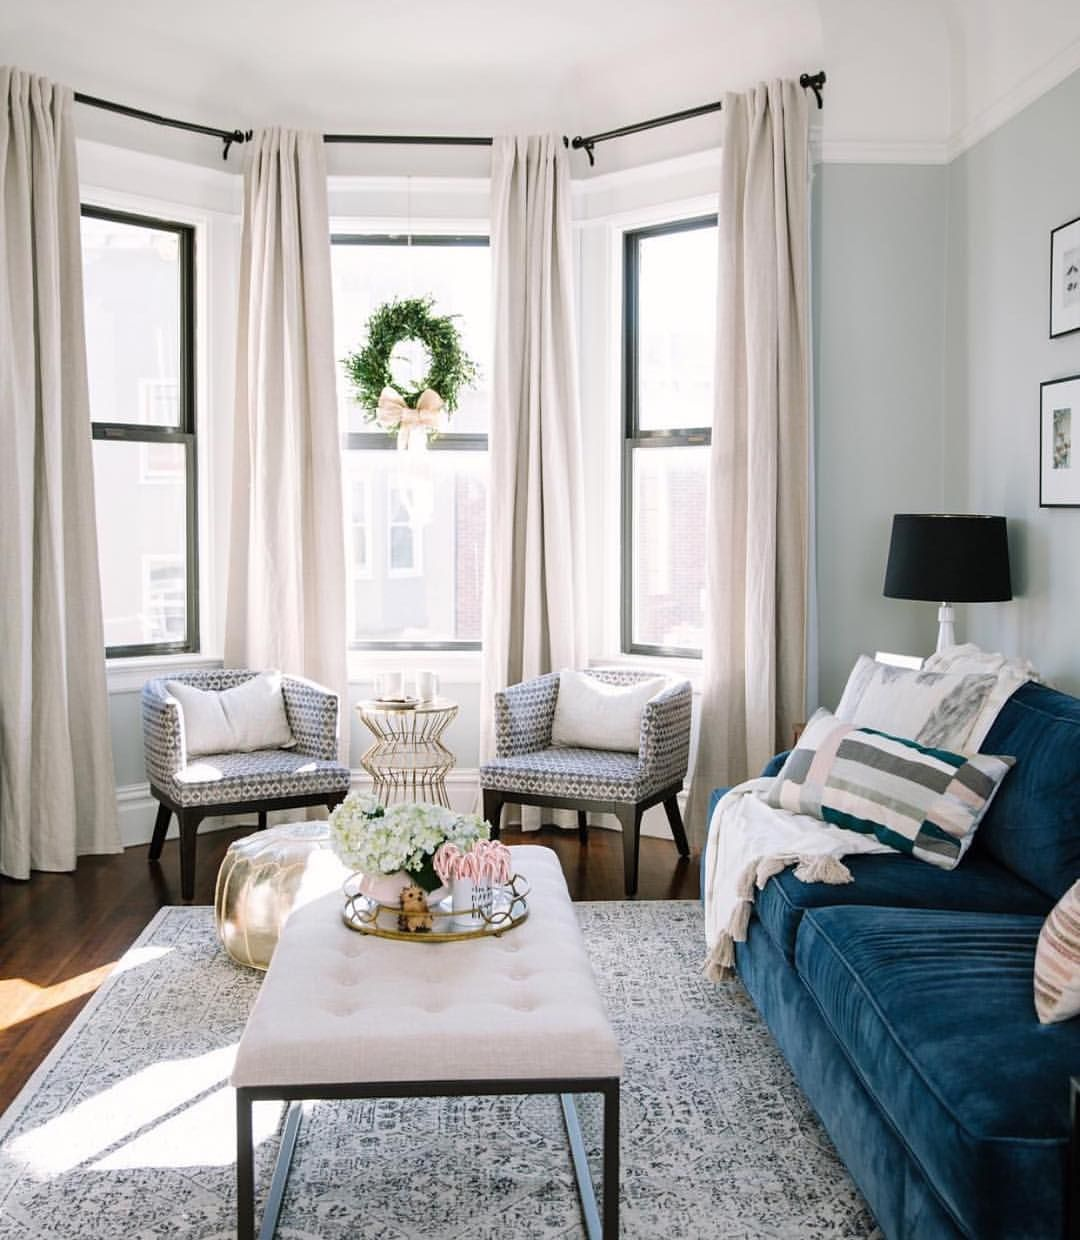 Bay window decor  k likes  comments  the everygirl theeverygirl on